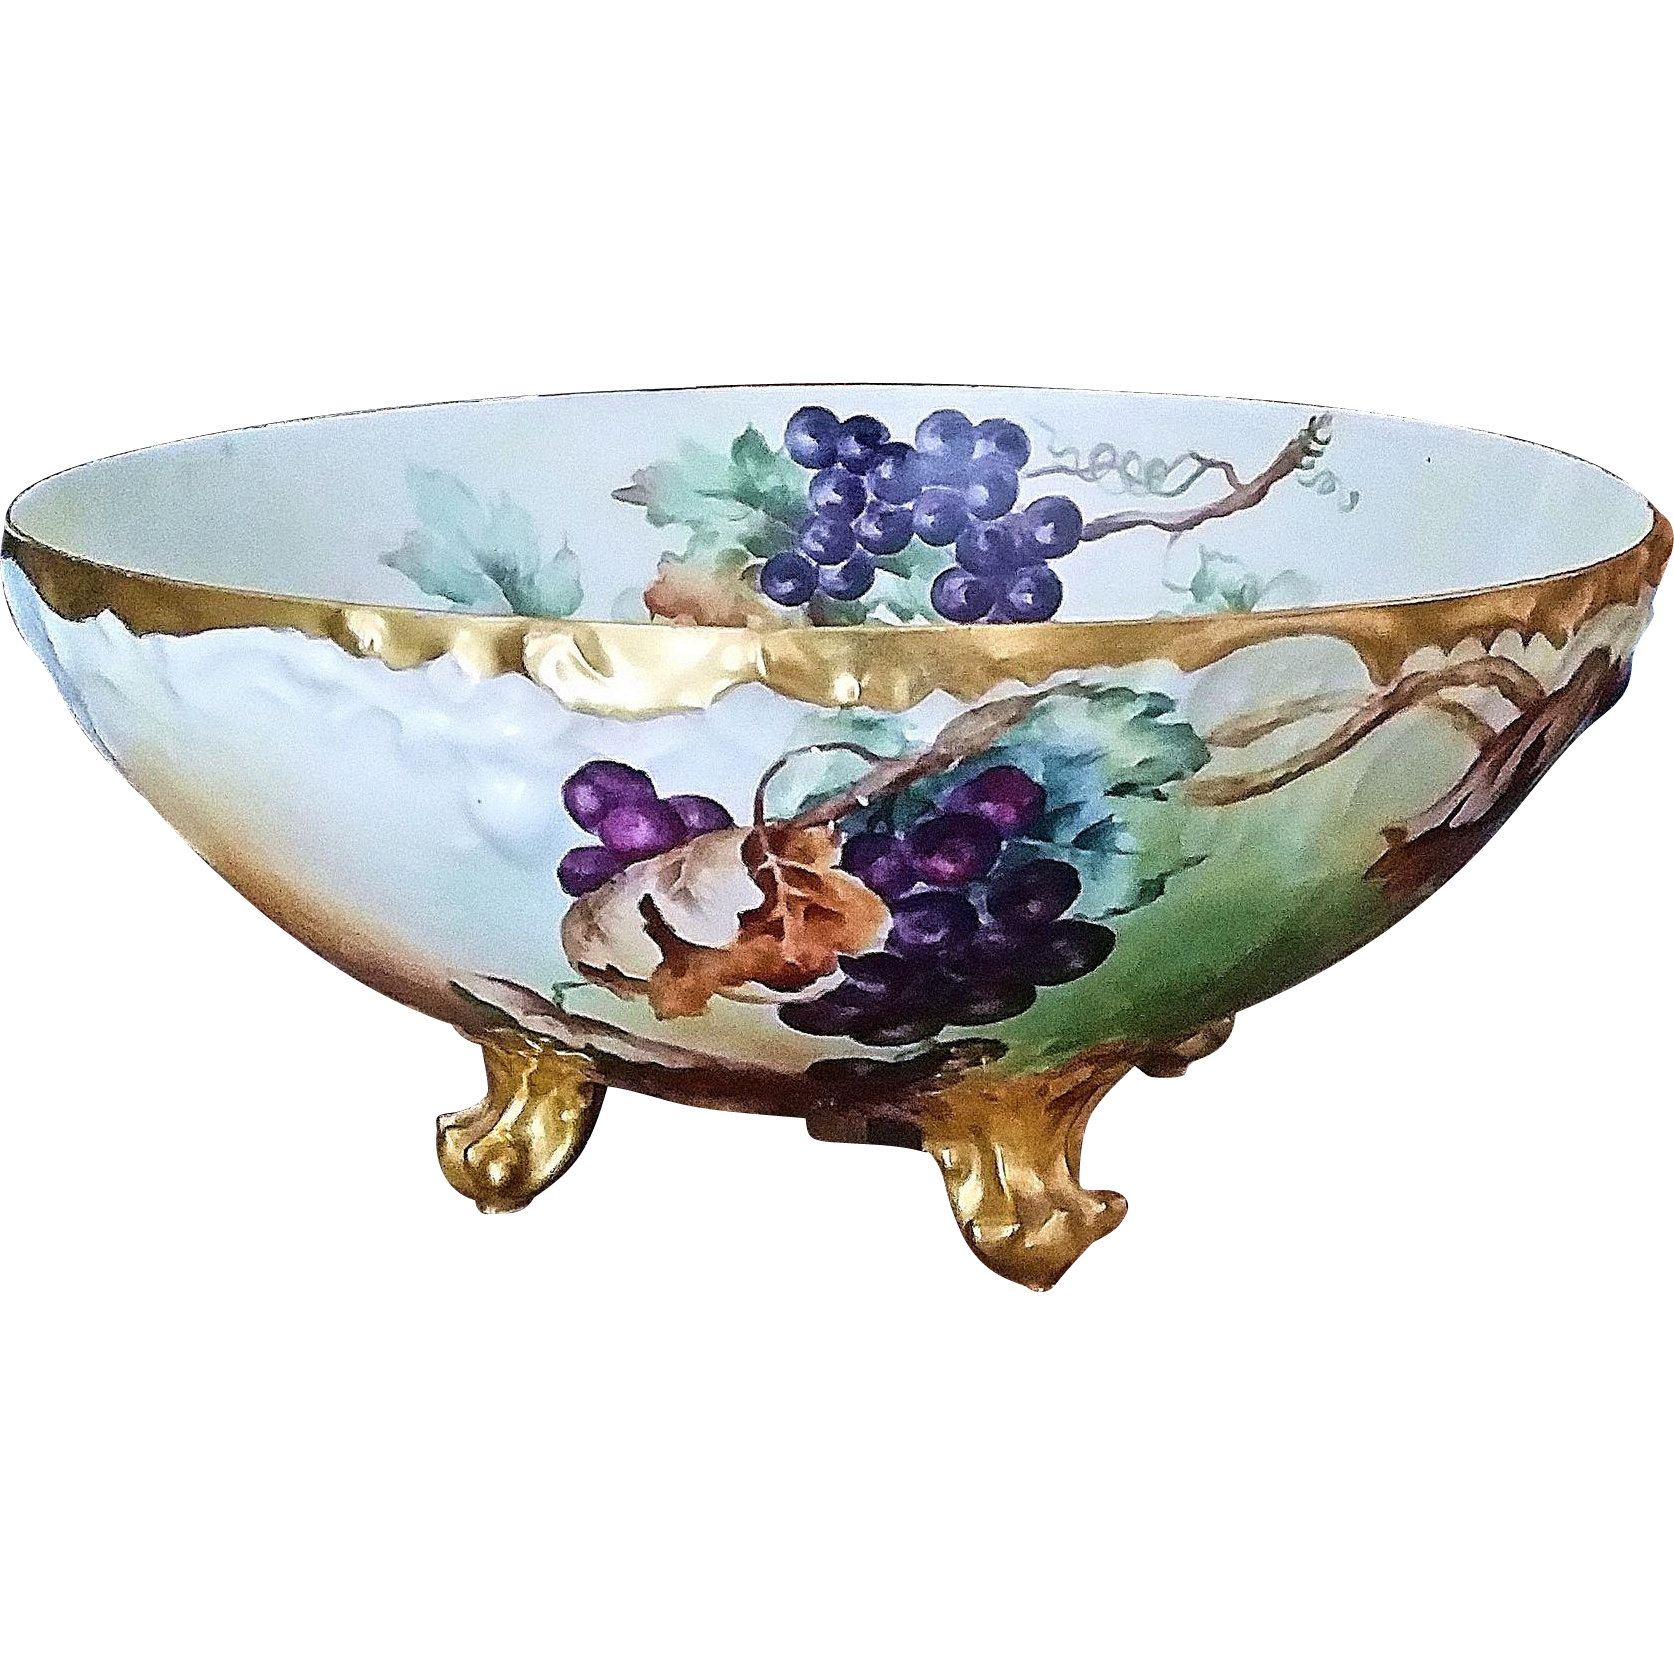 "Exquisite T & V Limoges France Hand Painted Deep ""Purple & Green Grapes"" 14-1/2"" 4-Footed Fruit Center Bowl by the Artist, ""Jennis Stafford"""